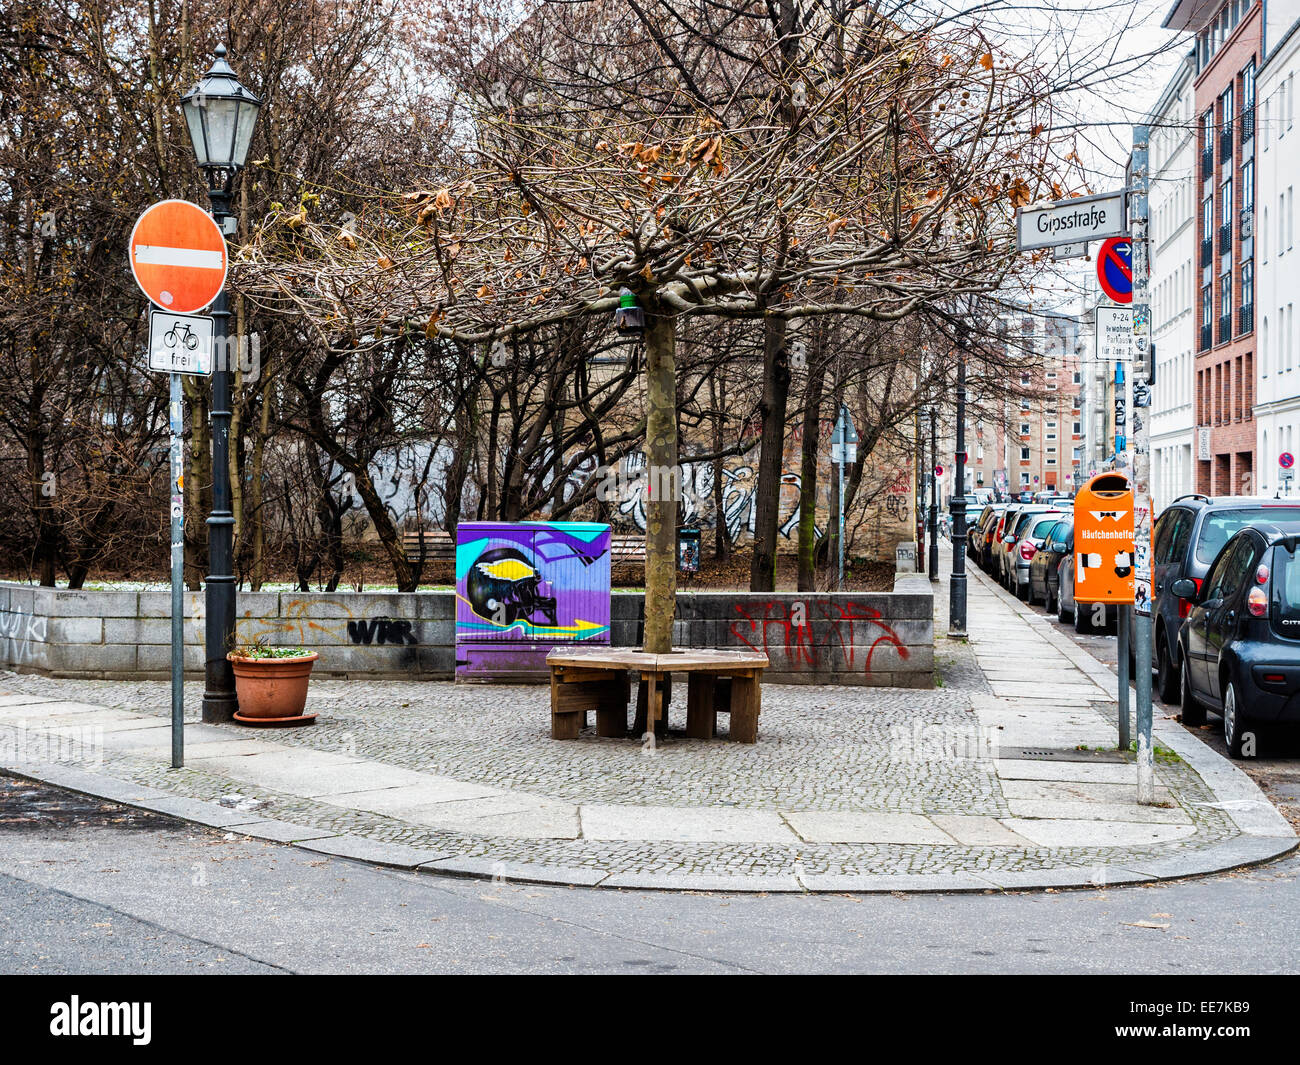 Berlin street, park, painted utility box, no entry sign, bench and tree, Mitte, Berlin - Stock Image